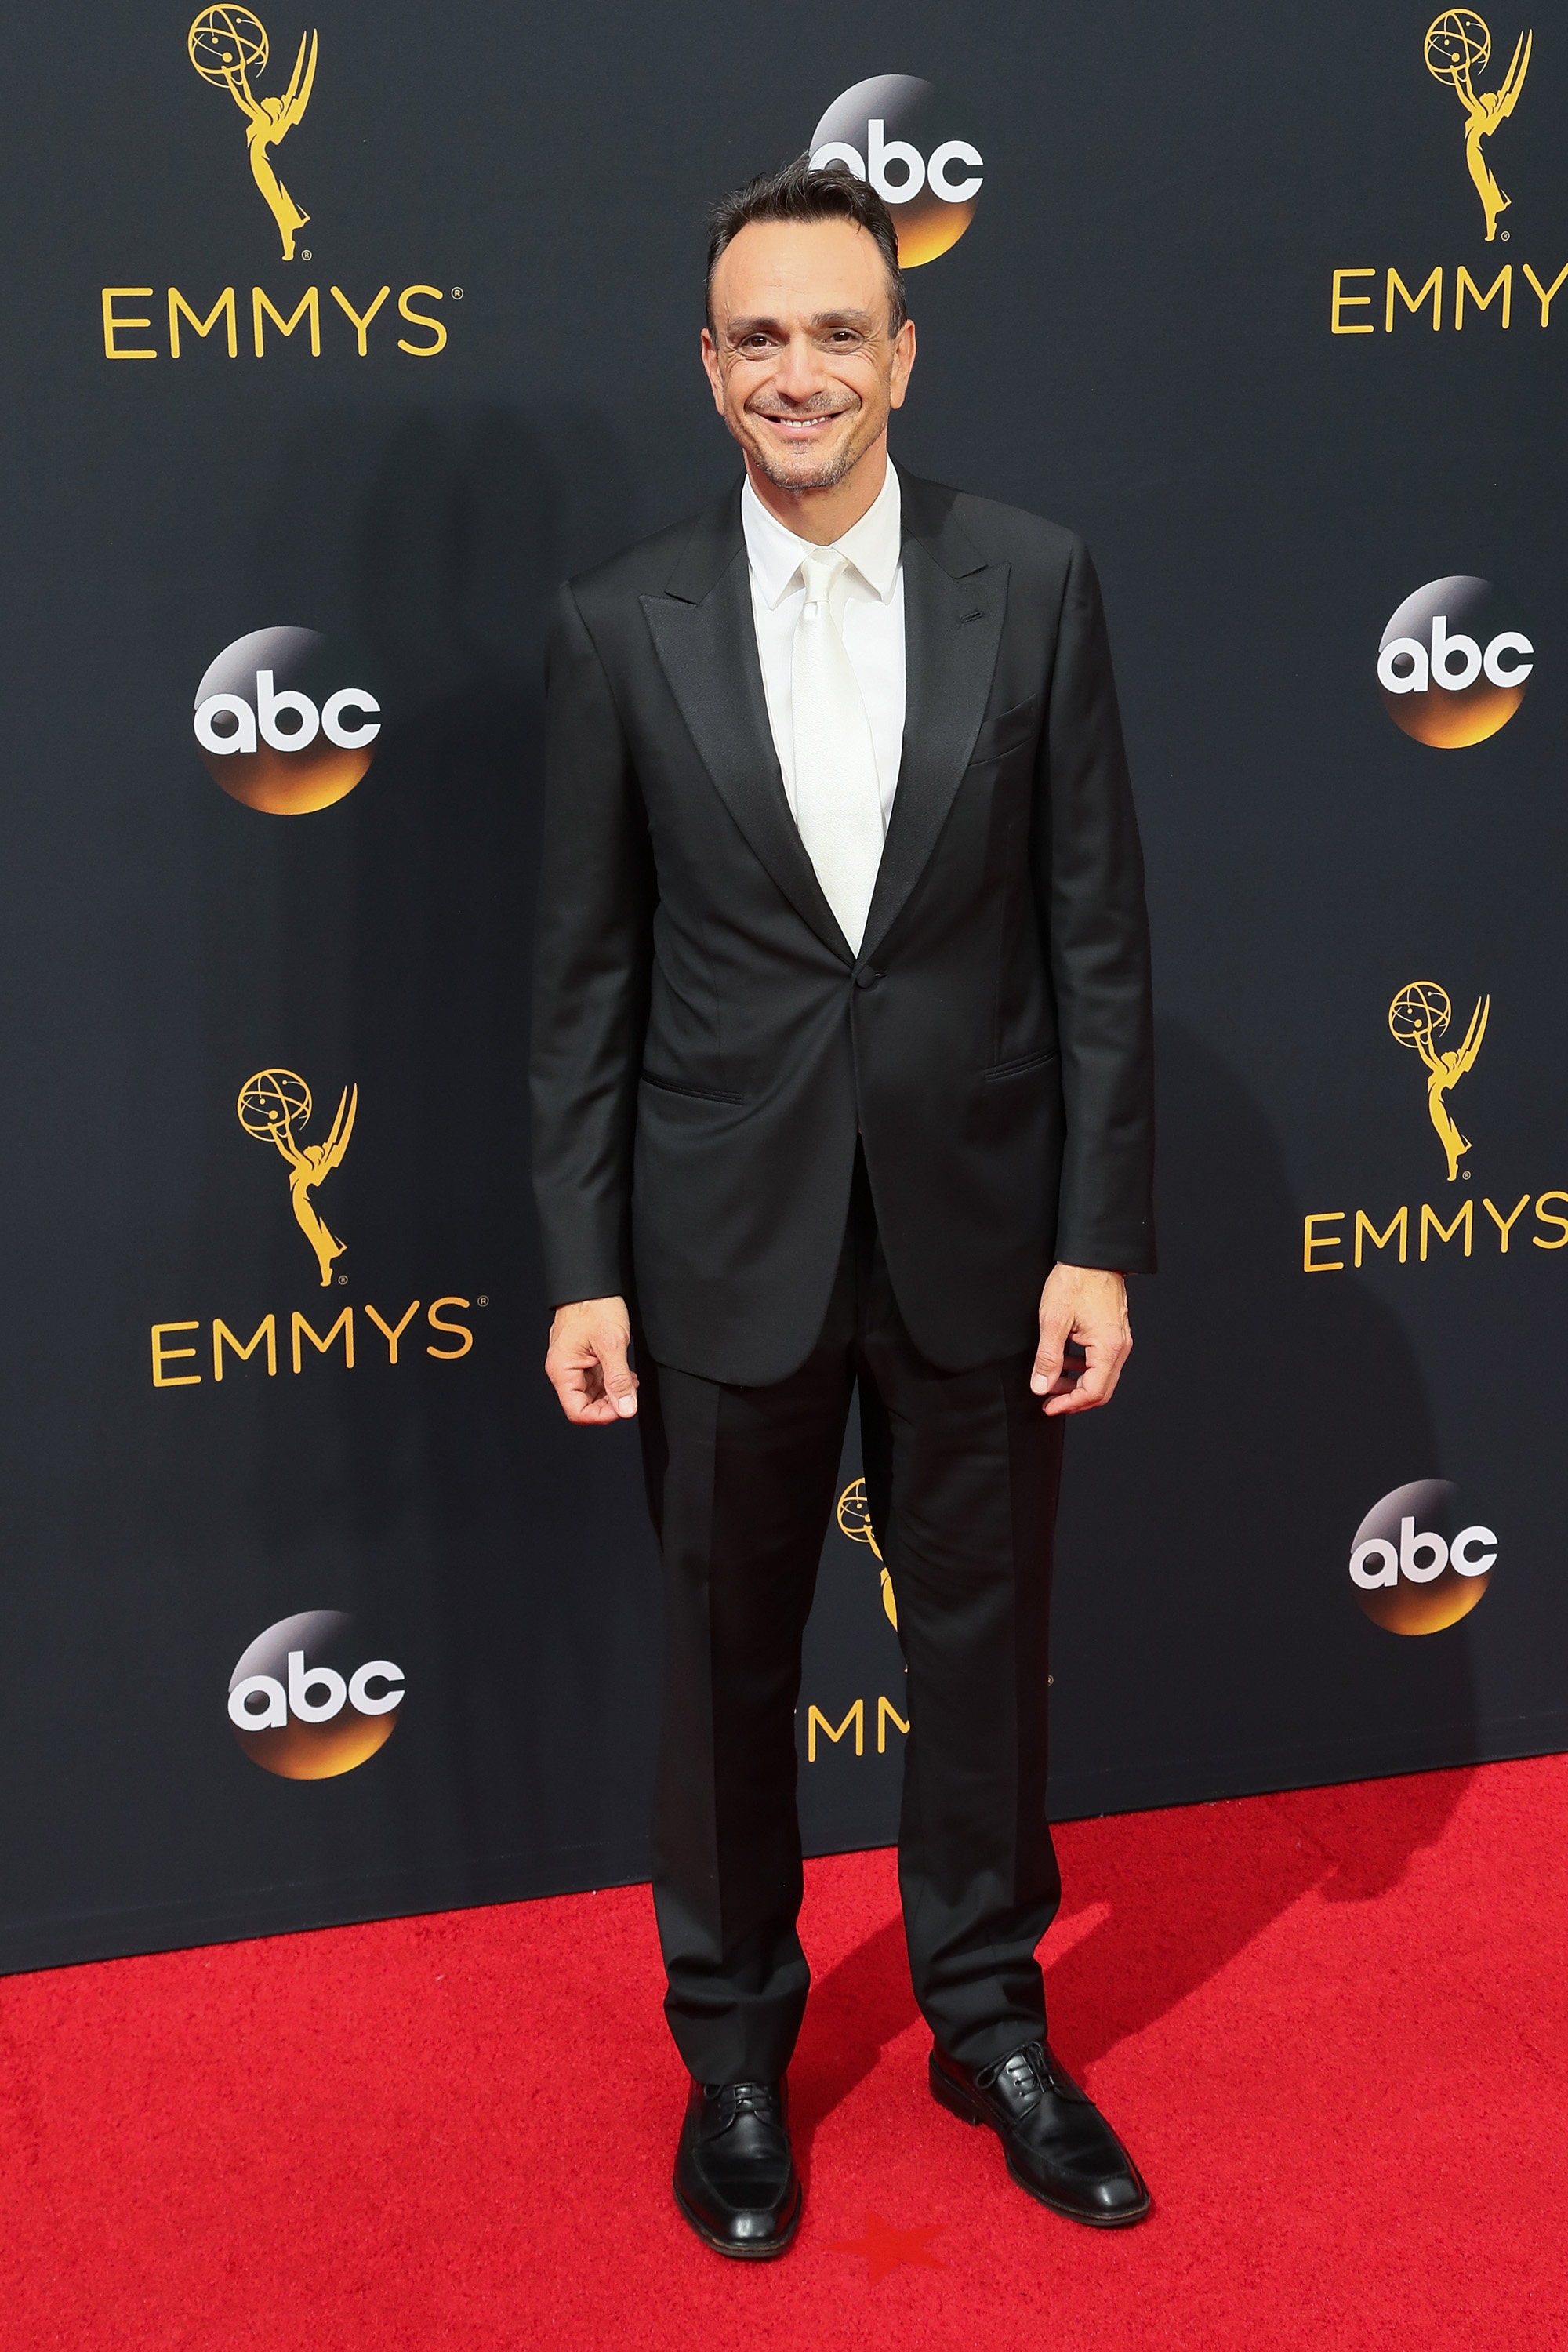 Hank Azaria arrives at the 68th Annual Primetime Emmy Awards at Microsoft Theater on Sept. 18, 2016 in Los Angeles.